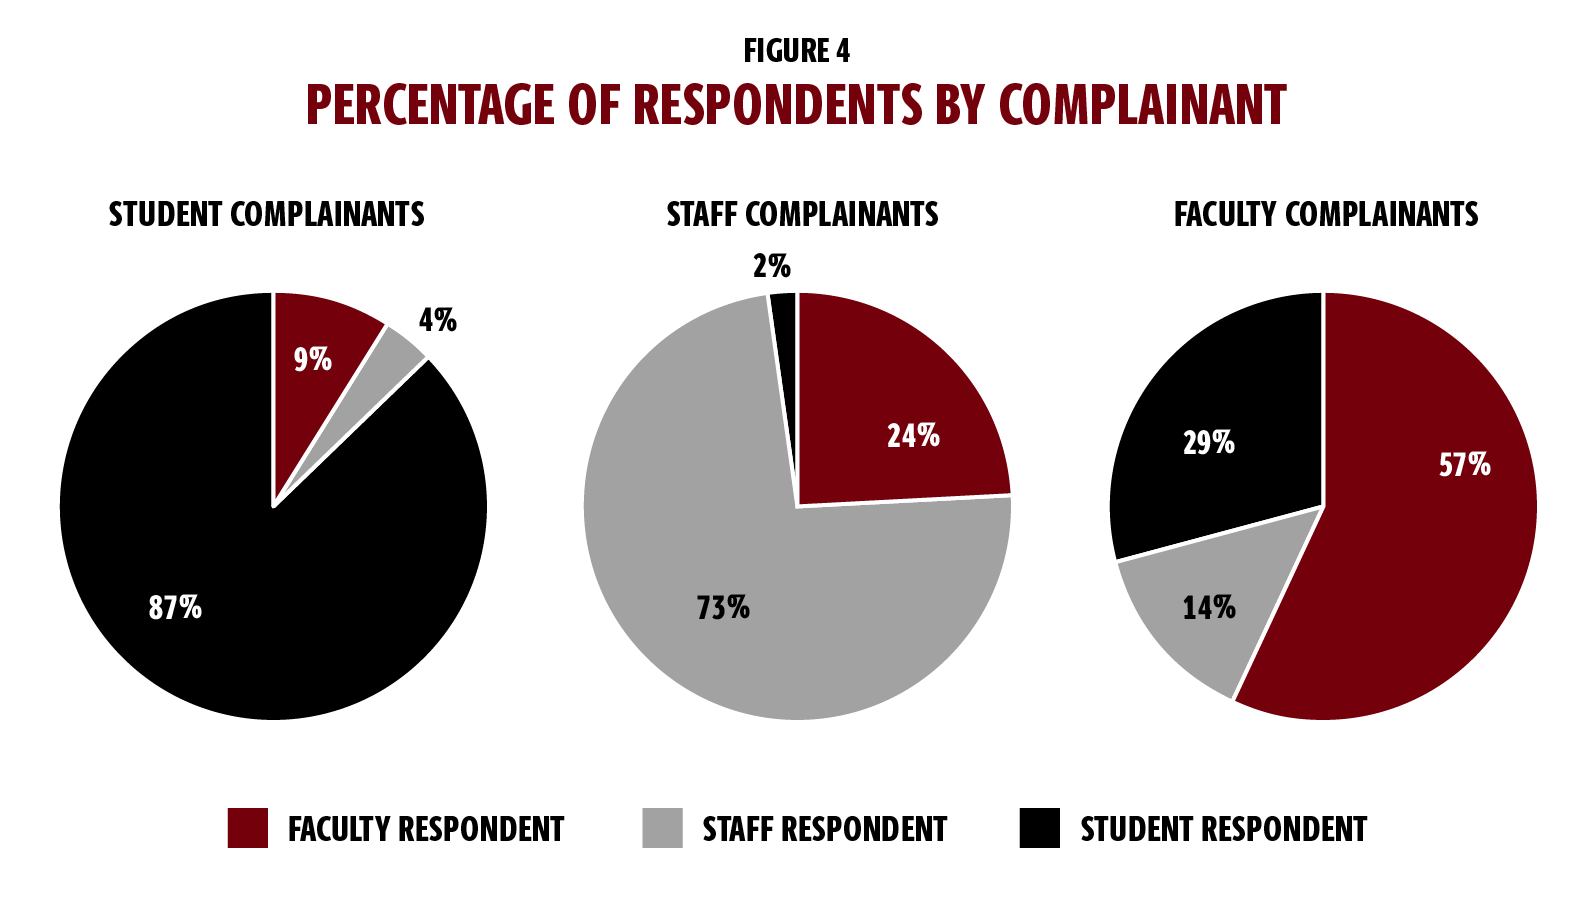 Figure 4 features three pie-chart graphics showing the percentage of respondents by complainant. The first chart on the left shows student complainants. In that chart, 87 percent of the respondents are students; 9 percent are faculty; and 4 percent are staff. The middle pie chart shows staff complainants, with 73 percent staff respondents; 24 percent faculty respondents; and 2 percent student respondents. The final pie chart on the right shows faculty complainants, with 57 percent faculty respondents; 29 percent student respondents; and 14 percent staff respondents.